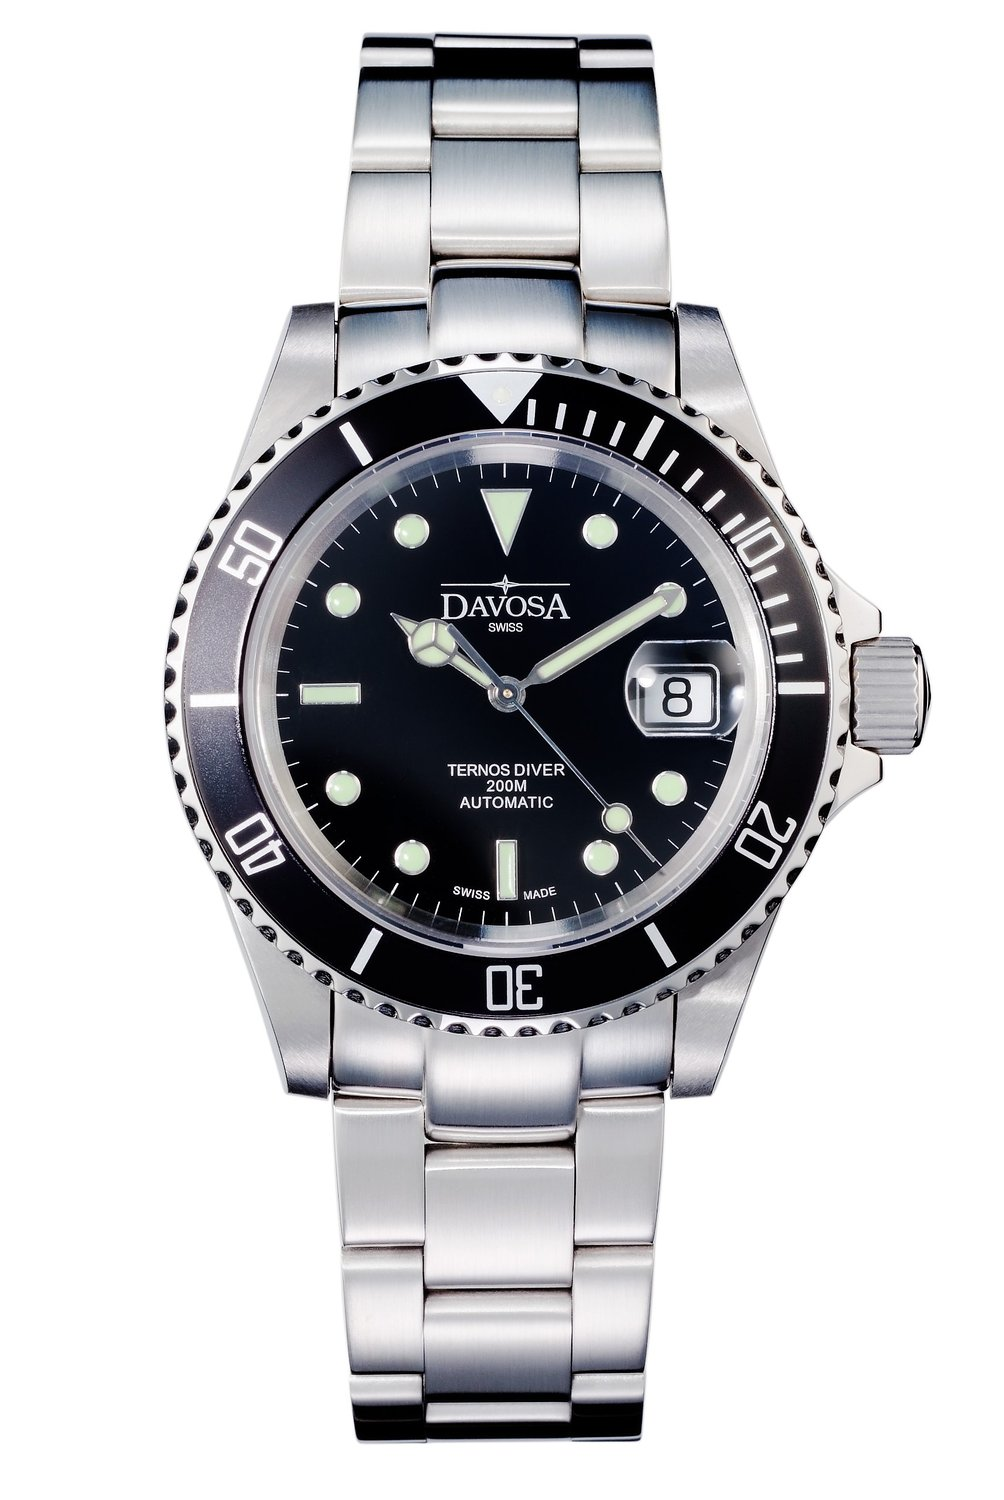 Davosa Ternos Diver Men's Automatic Watch with Black Dial Analogue Display and Silver Stainless Steel Bracelet 16155550